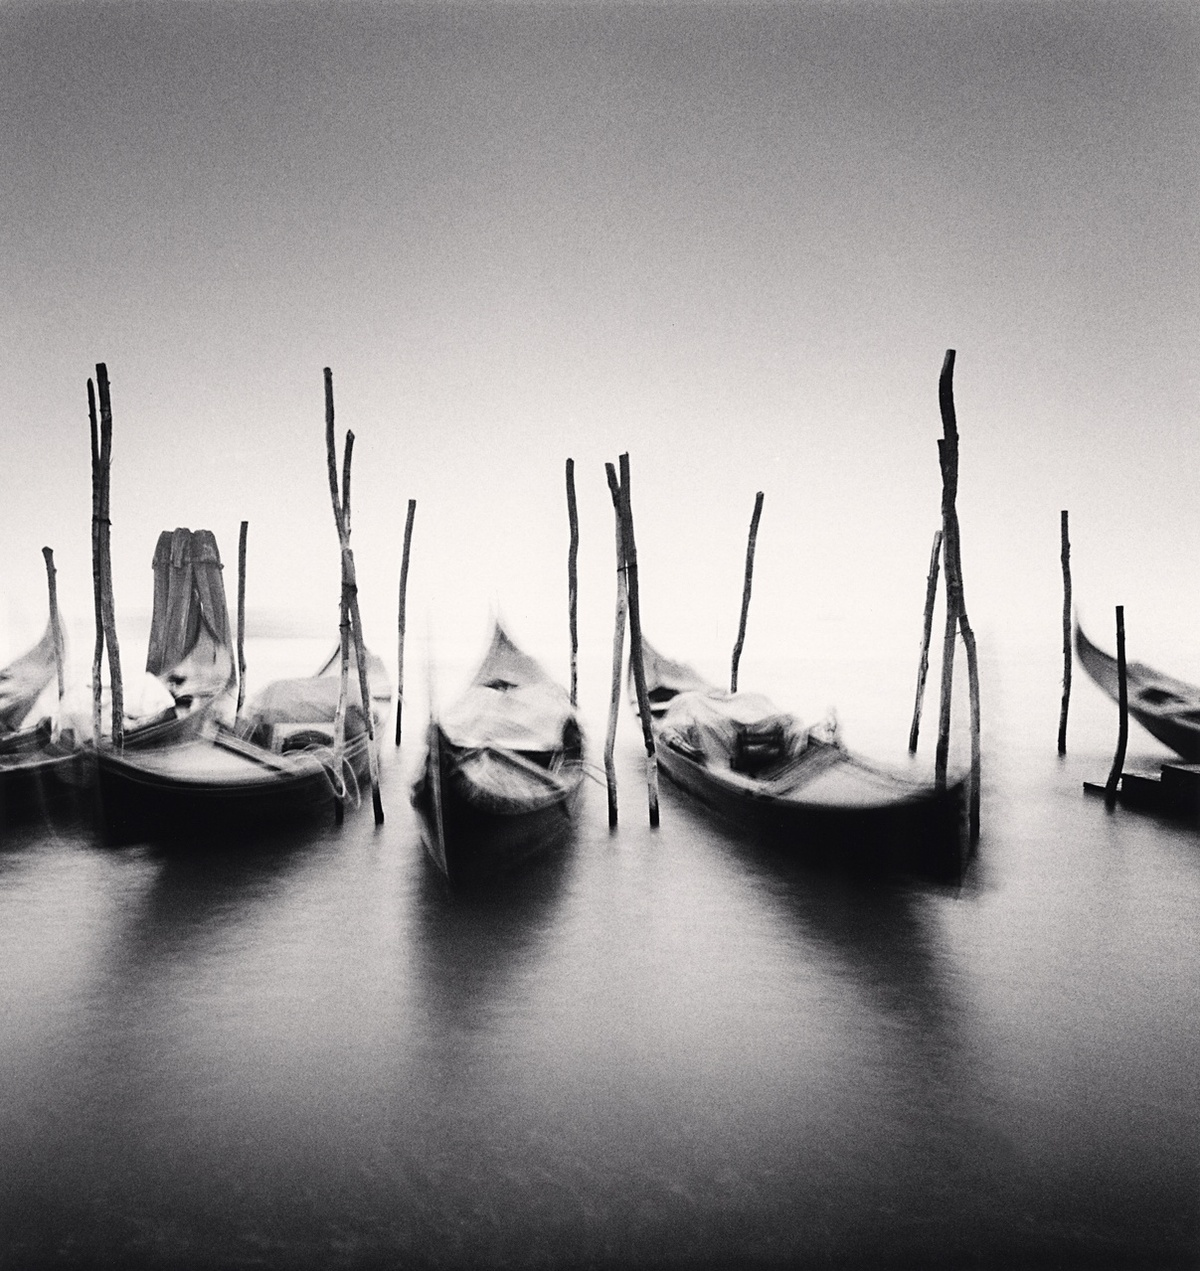 Michael Kenna Six Gondolas, Giardini ex Reali, Venice, Italy 1980 Sepia Toned Silver Gelatin Print From An Edition Of 45 8 x 8 Inches